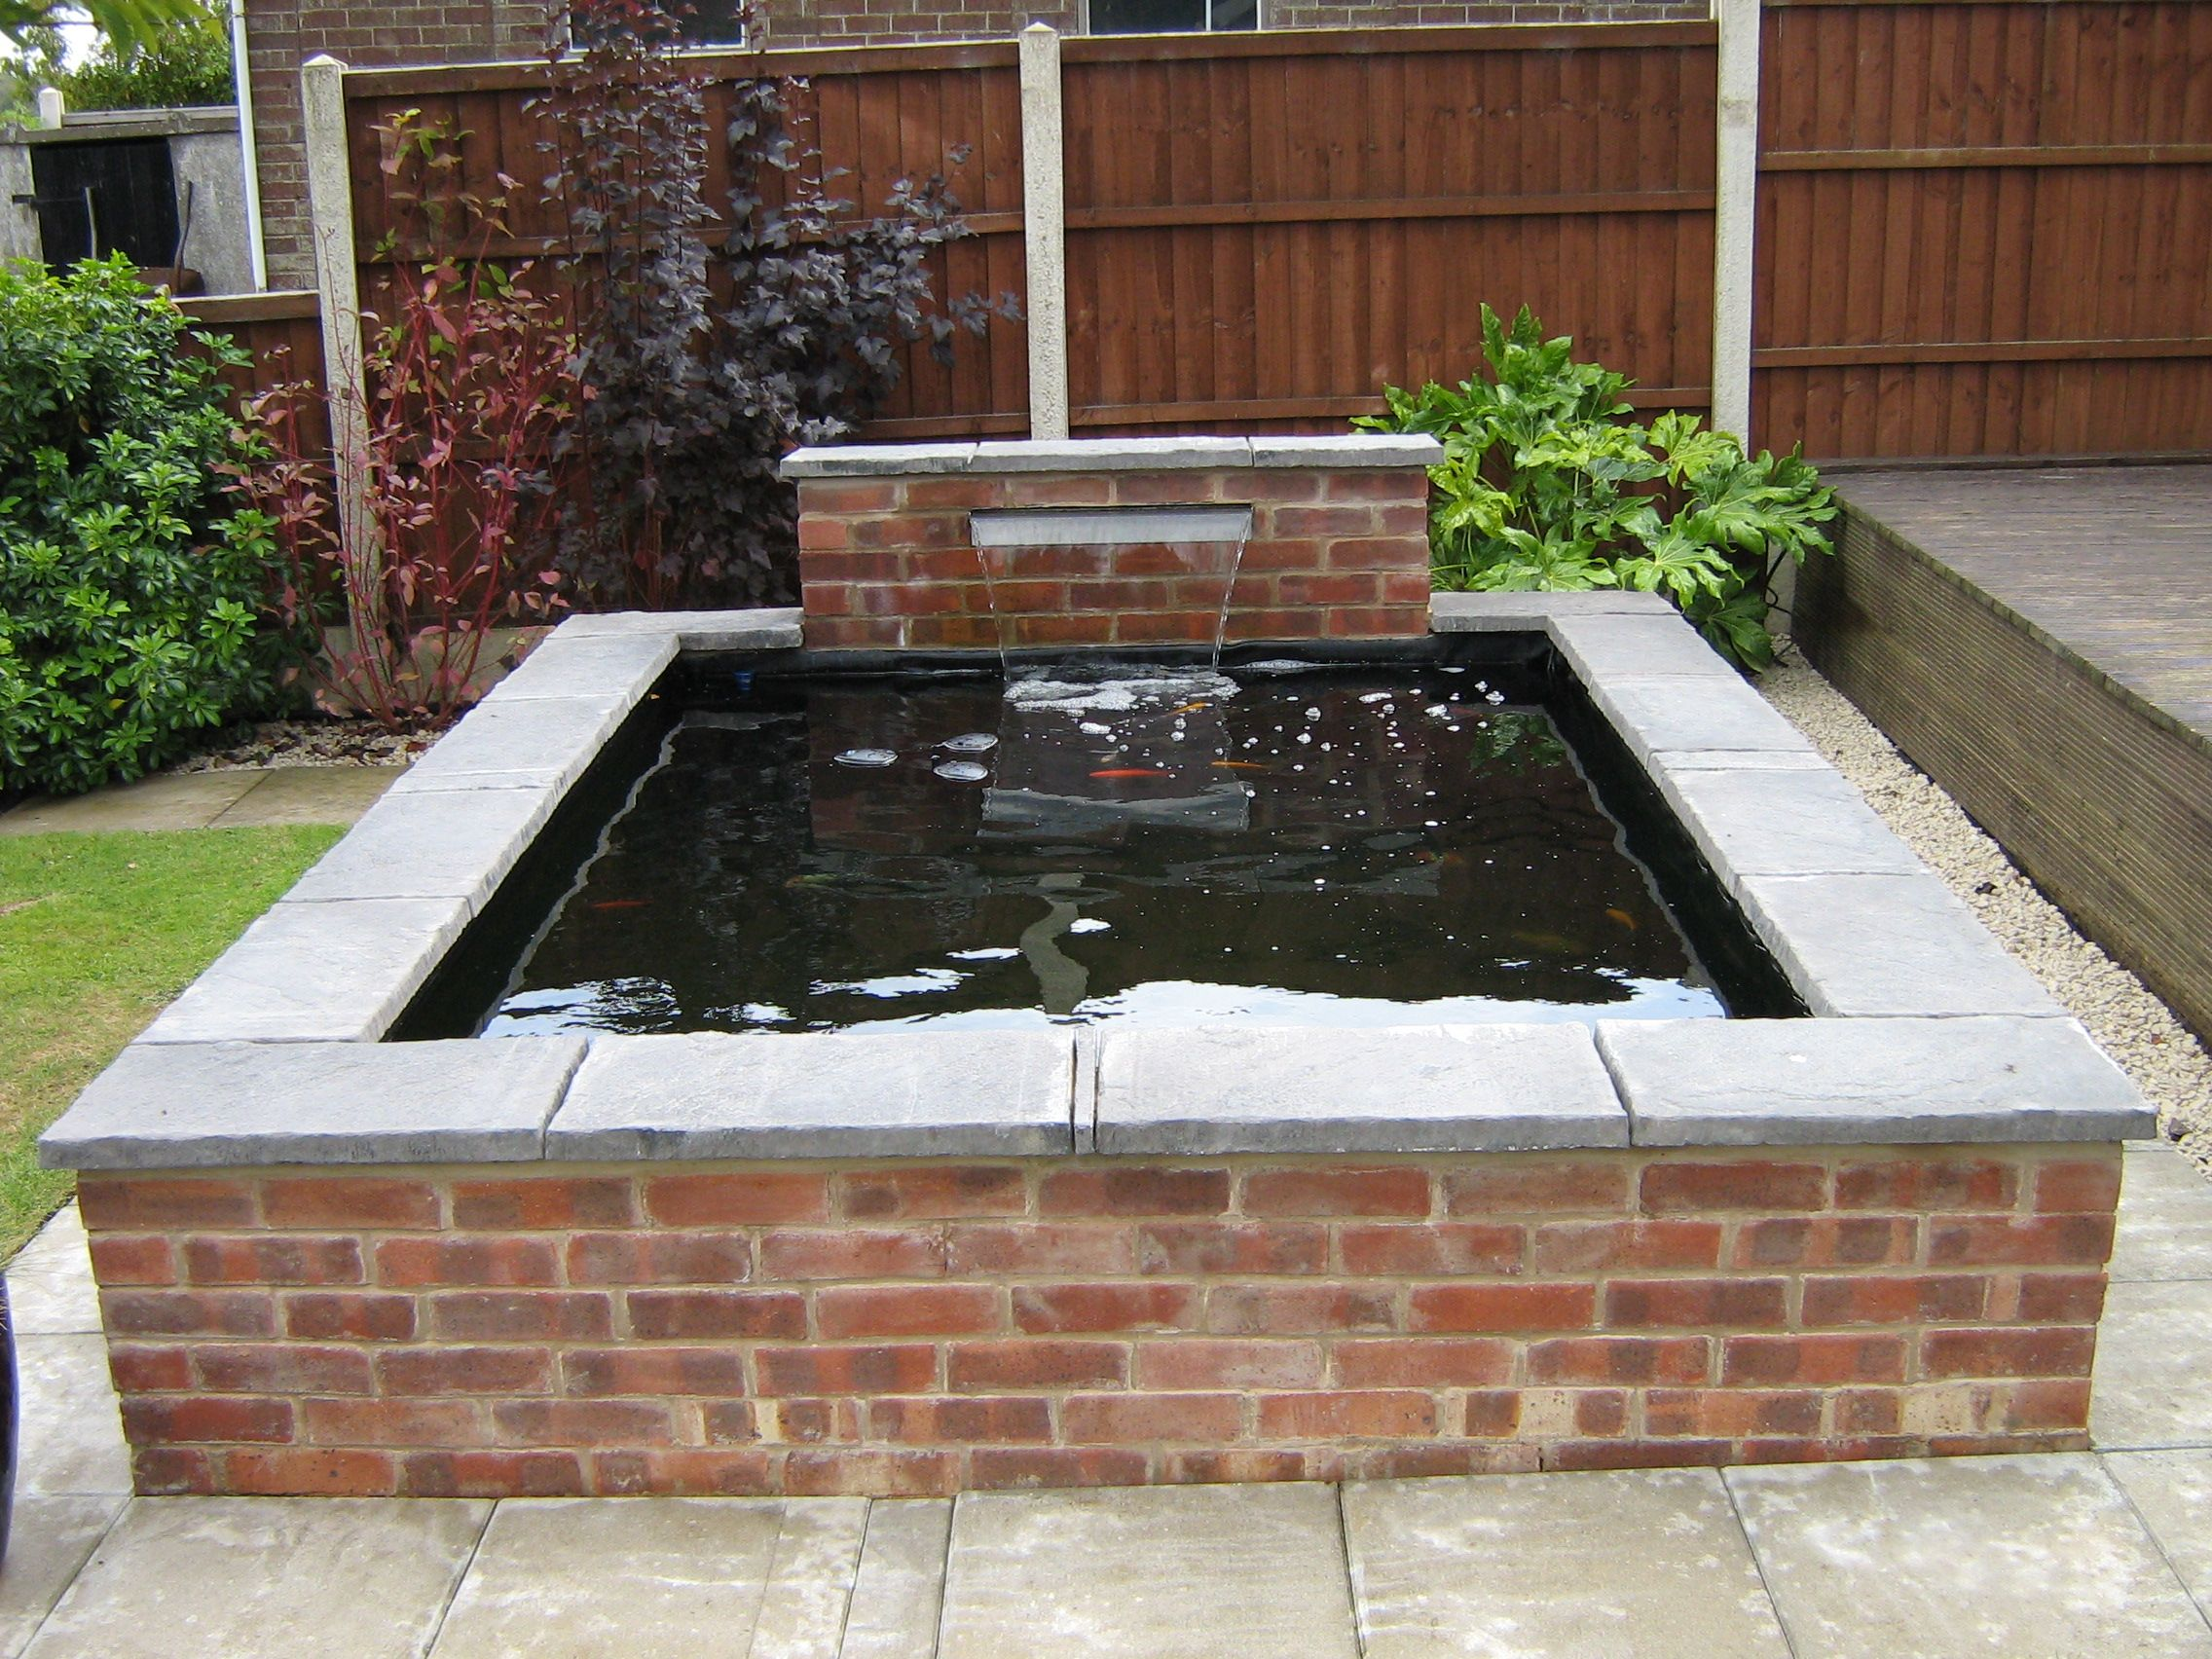 Koi pond construction google search zahrada for Raised koi pond ideas